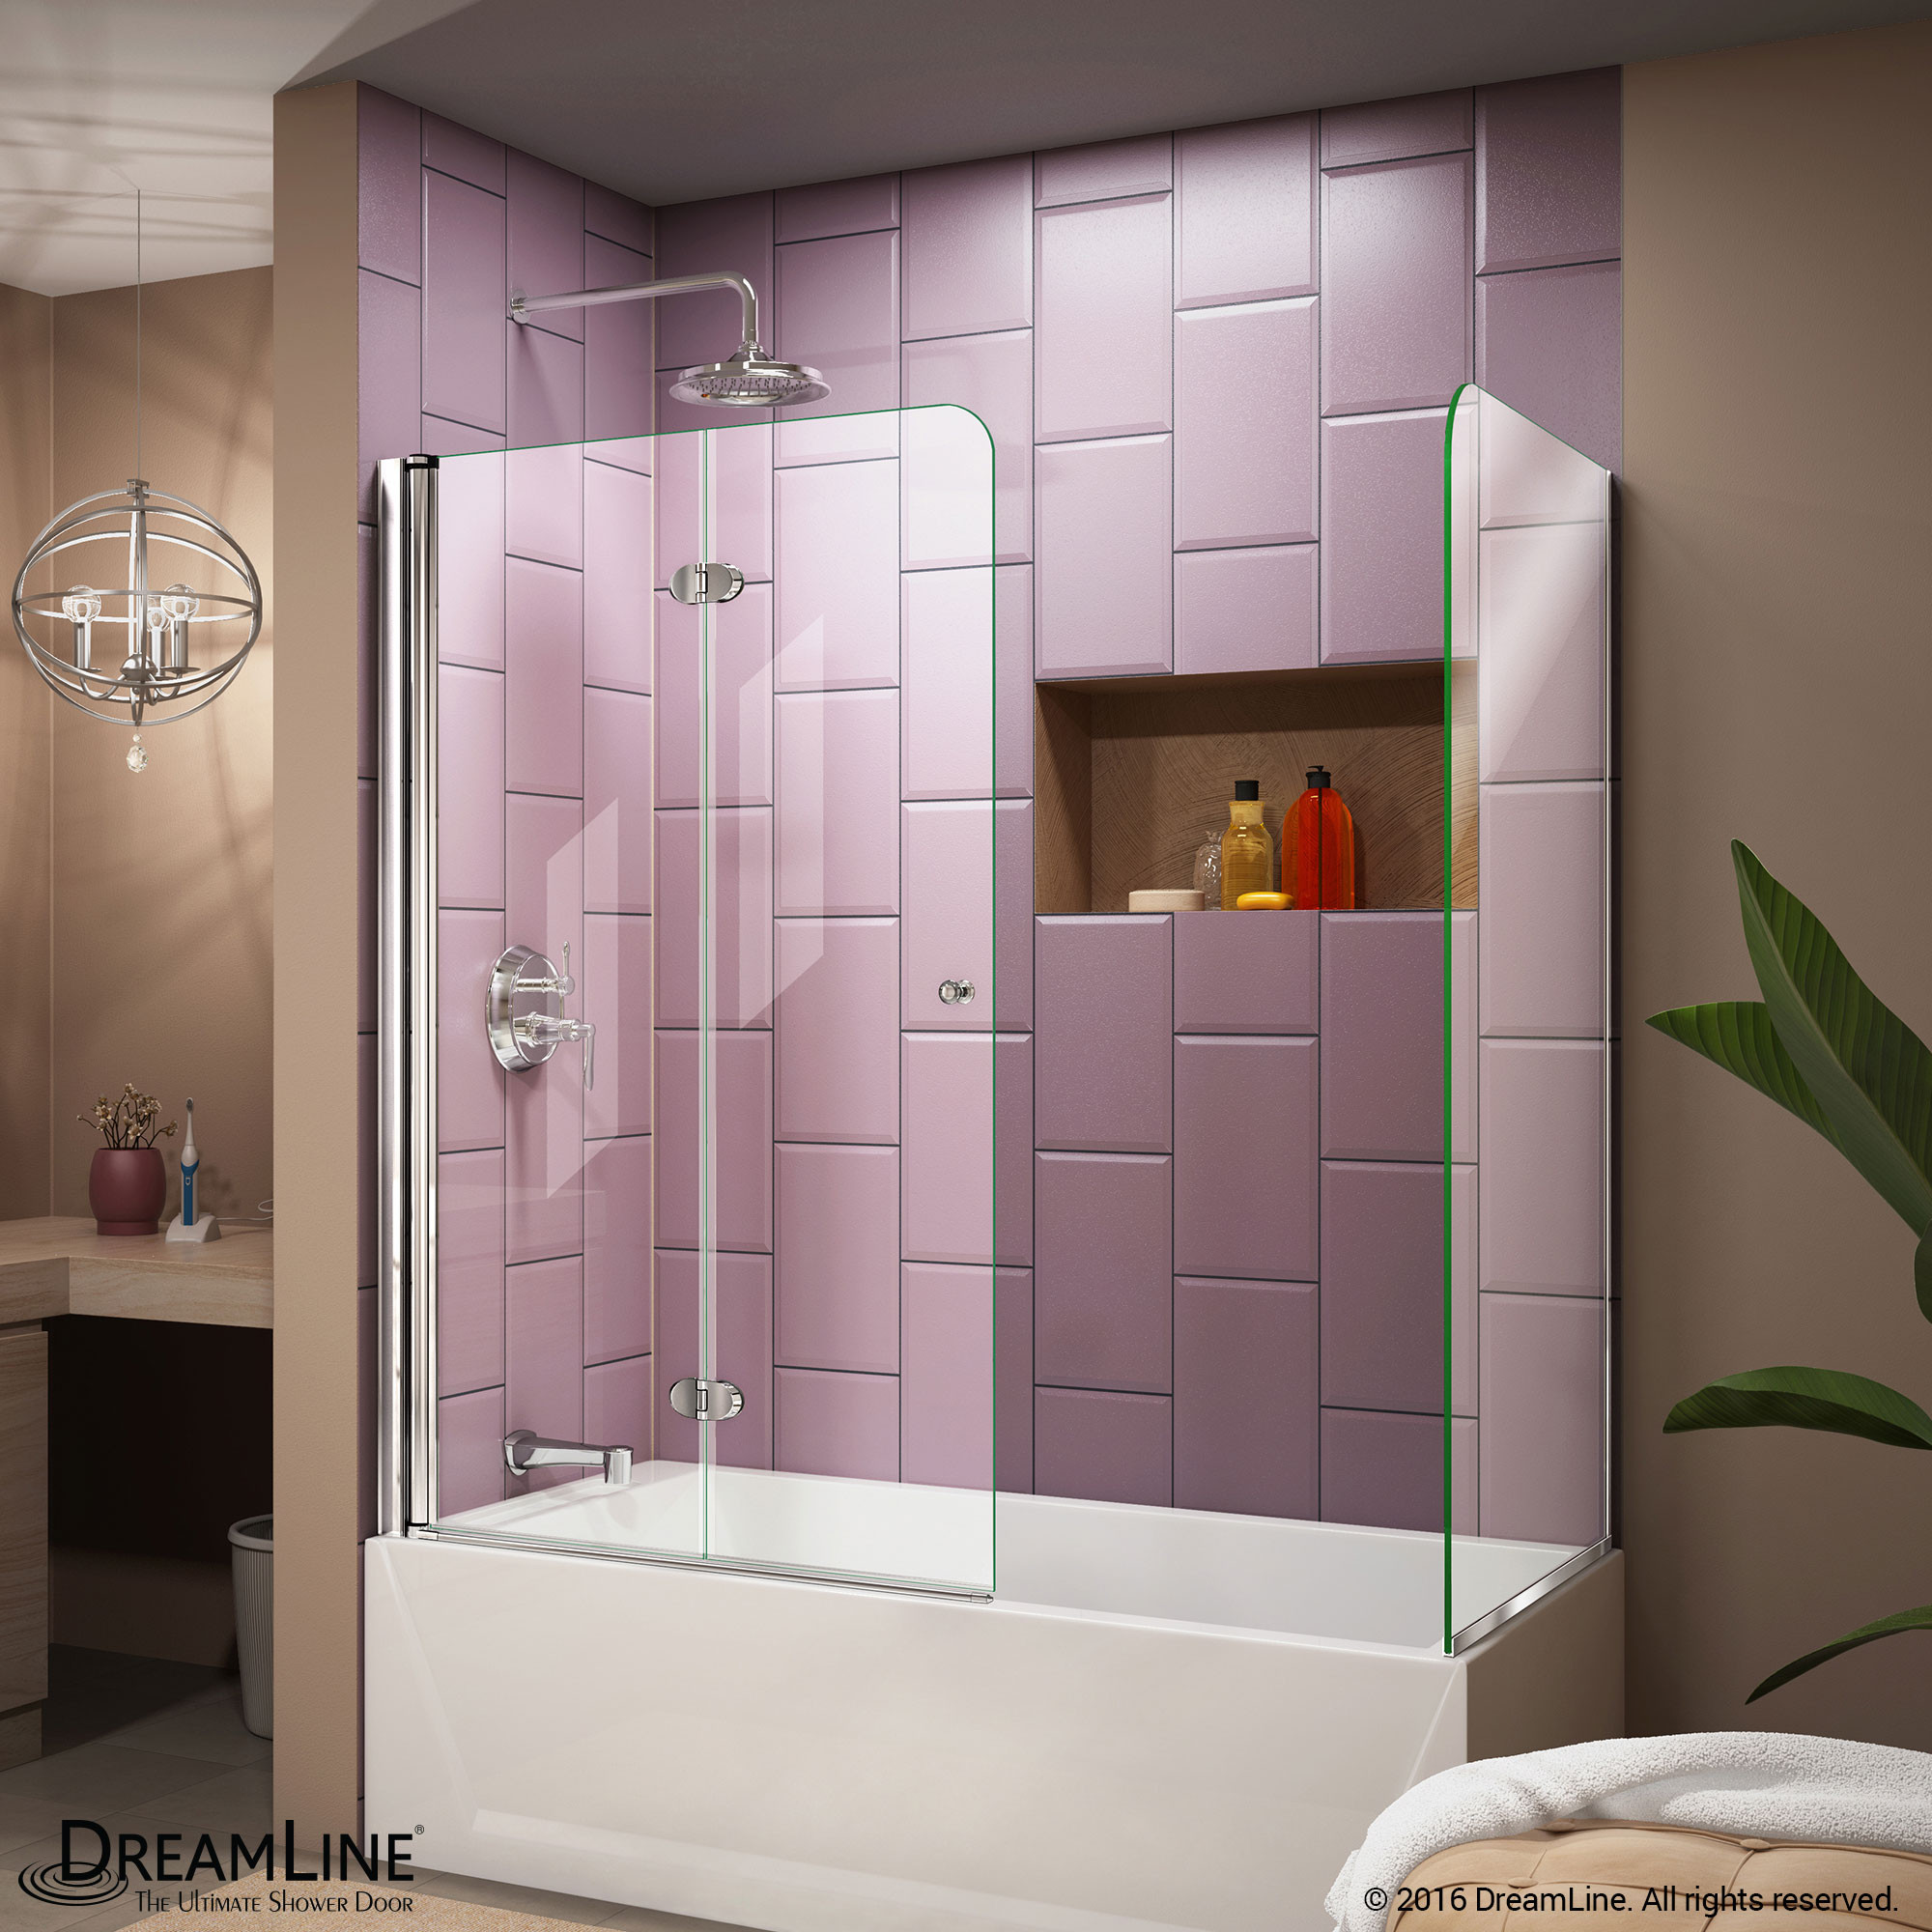 DreamLine SHDR-3636580-RT-01 Aqua Fold 56 to 60 in. W x 30 in. D x 58 in. H Hinged Tub Door